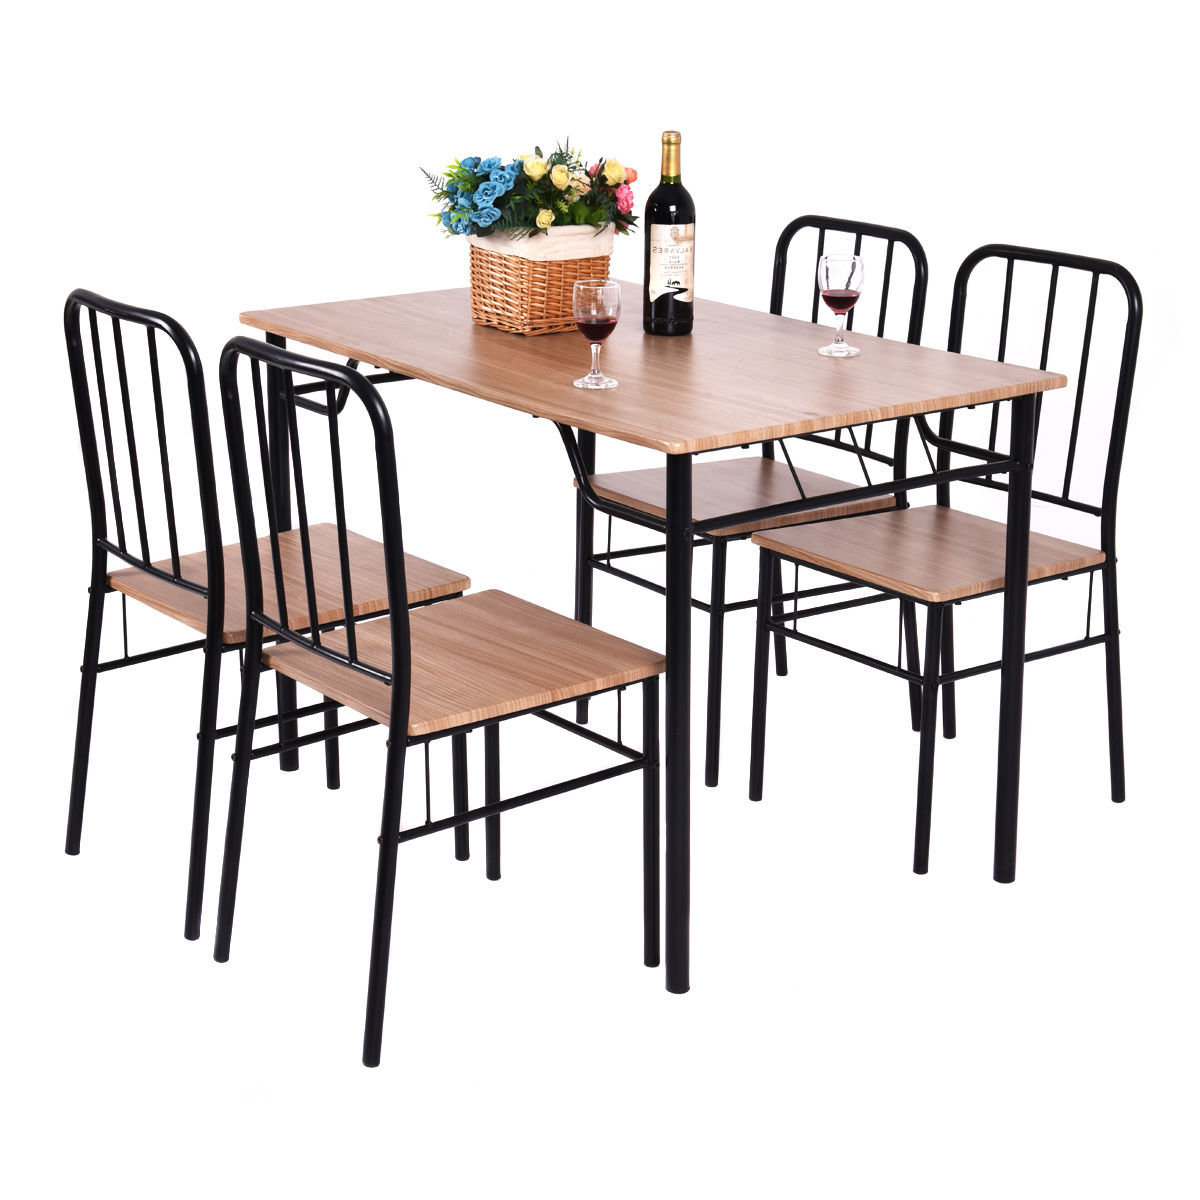 Conover 5 Piece Dining Set In Best And Newest Kaelin 5 Piece Dining Sets (View 3 of 20)